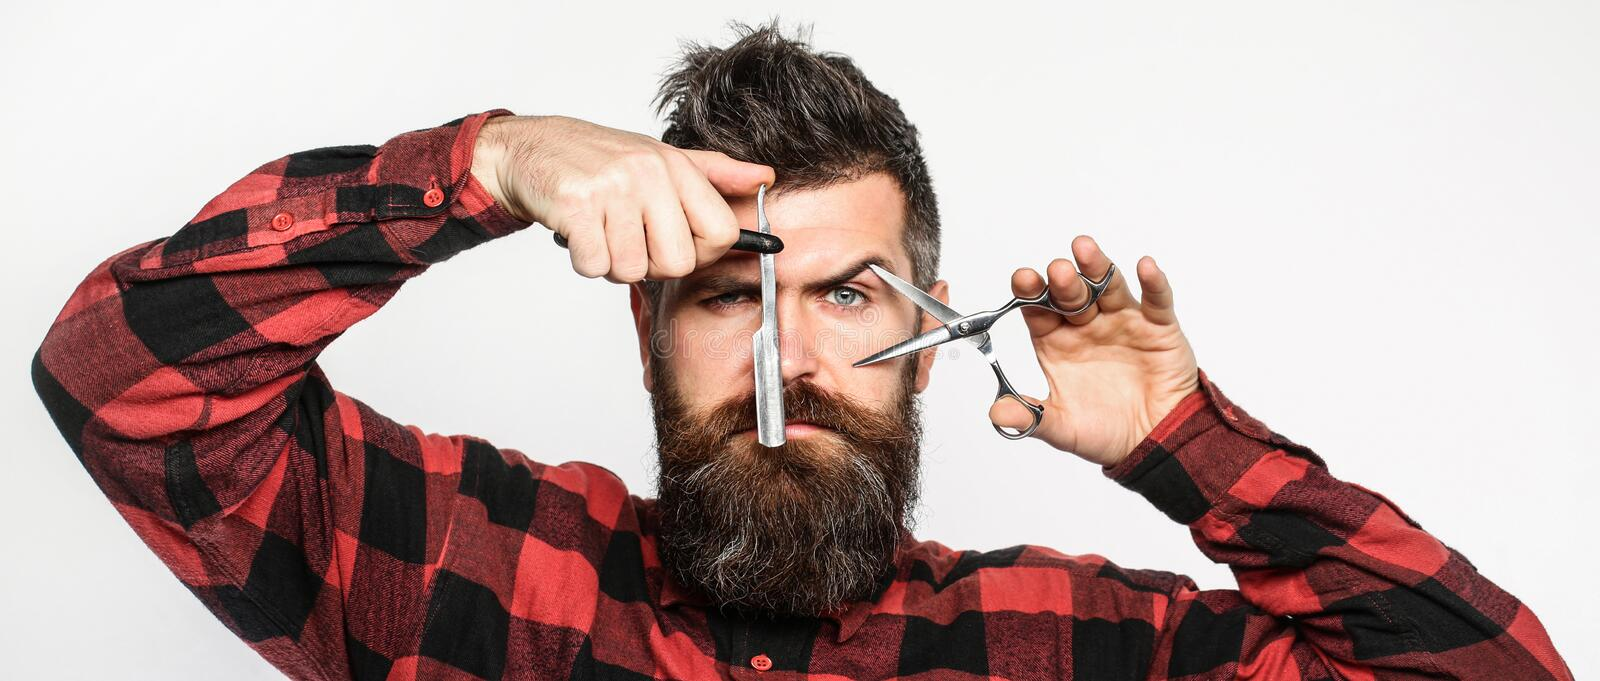 Barber scissors and straight razor, barbershop. Mens haircut, shaving. Bearded man, long beard, brutal, caucasian royalty free stock photo